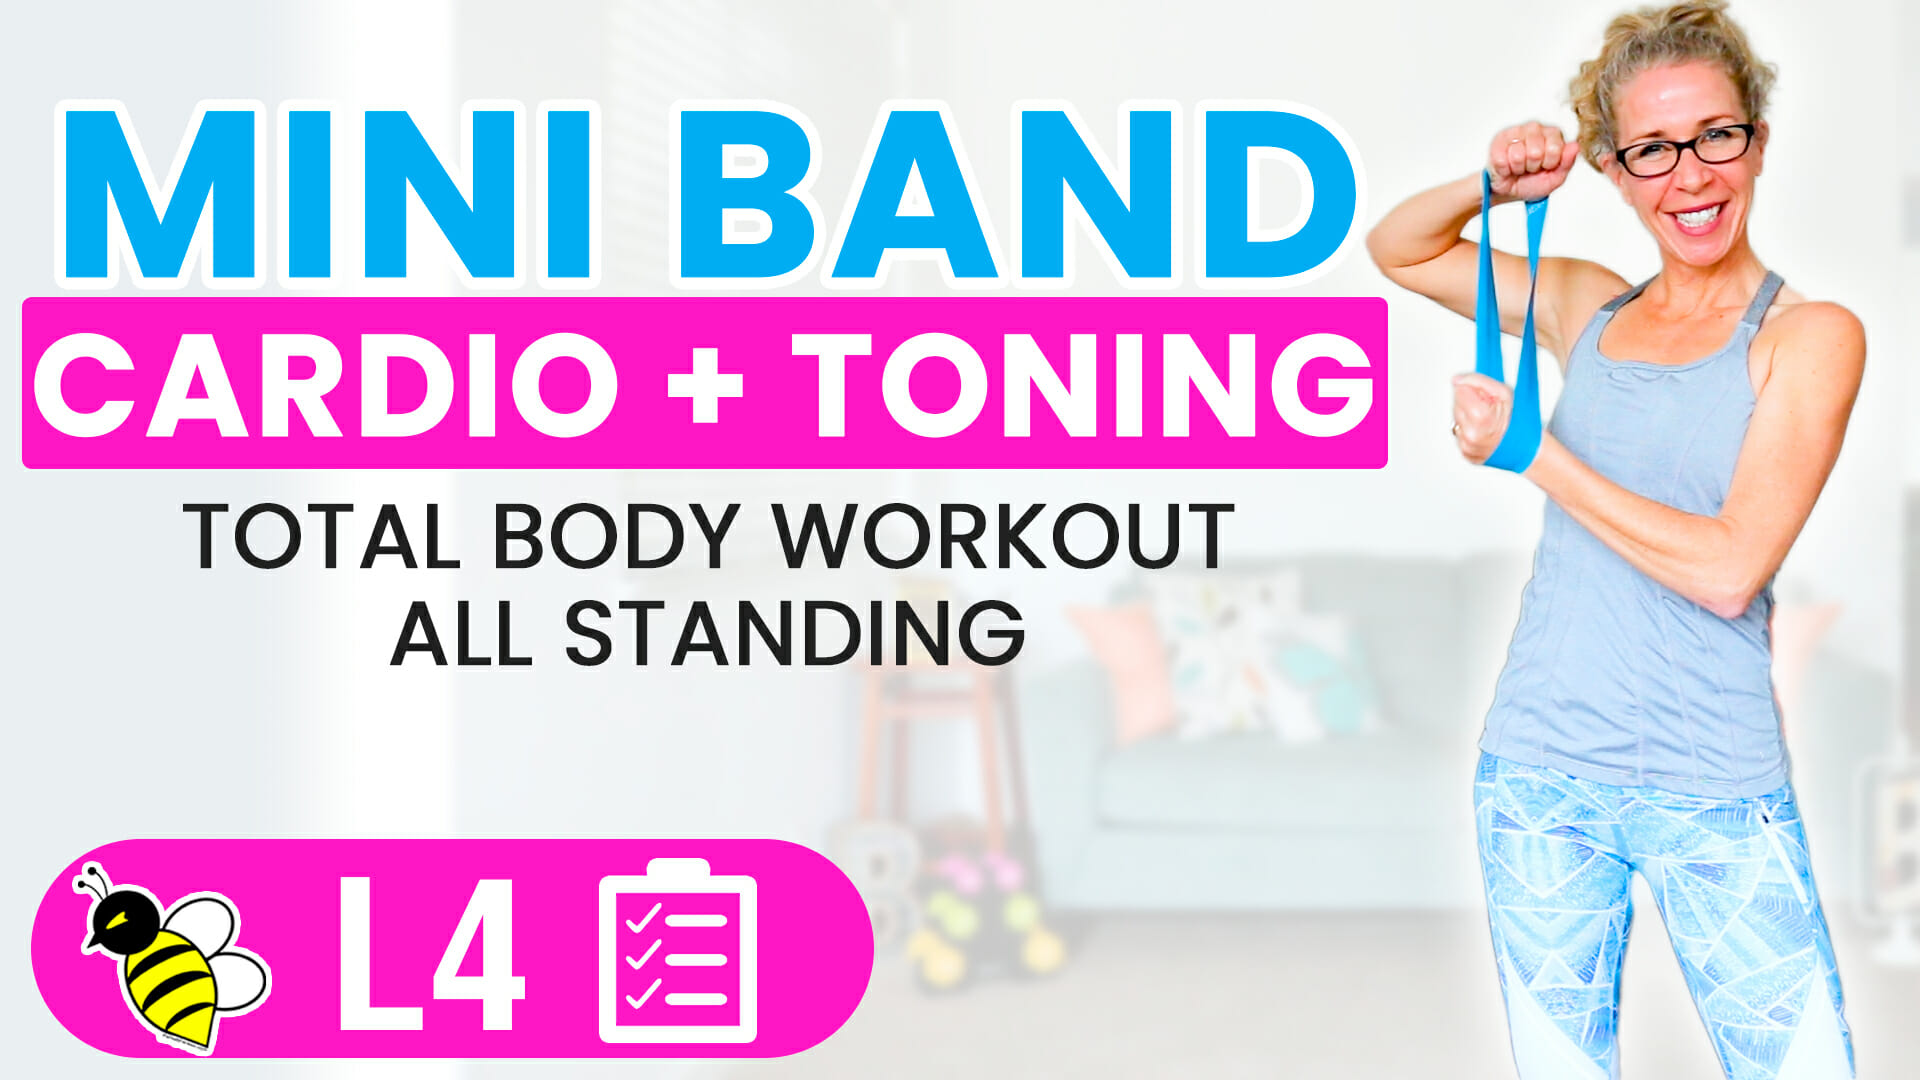 MINI BAND Sammich 55 minute total body CARDIO + TONING workout